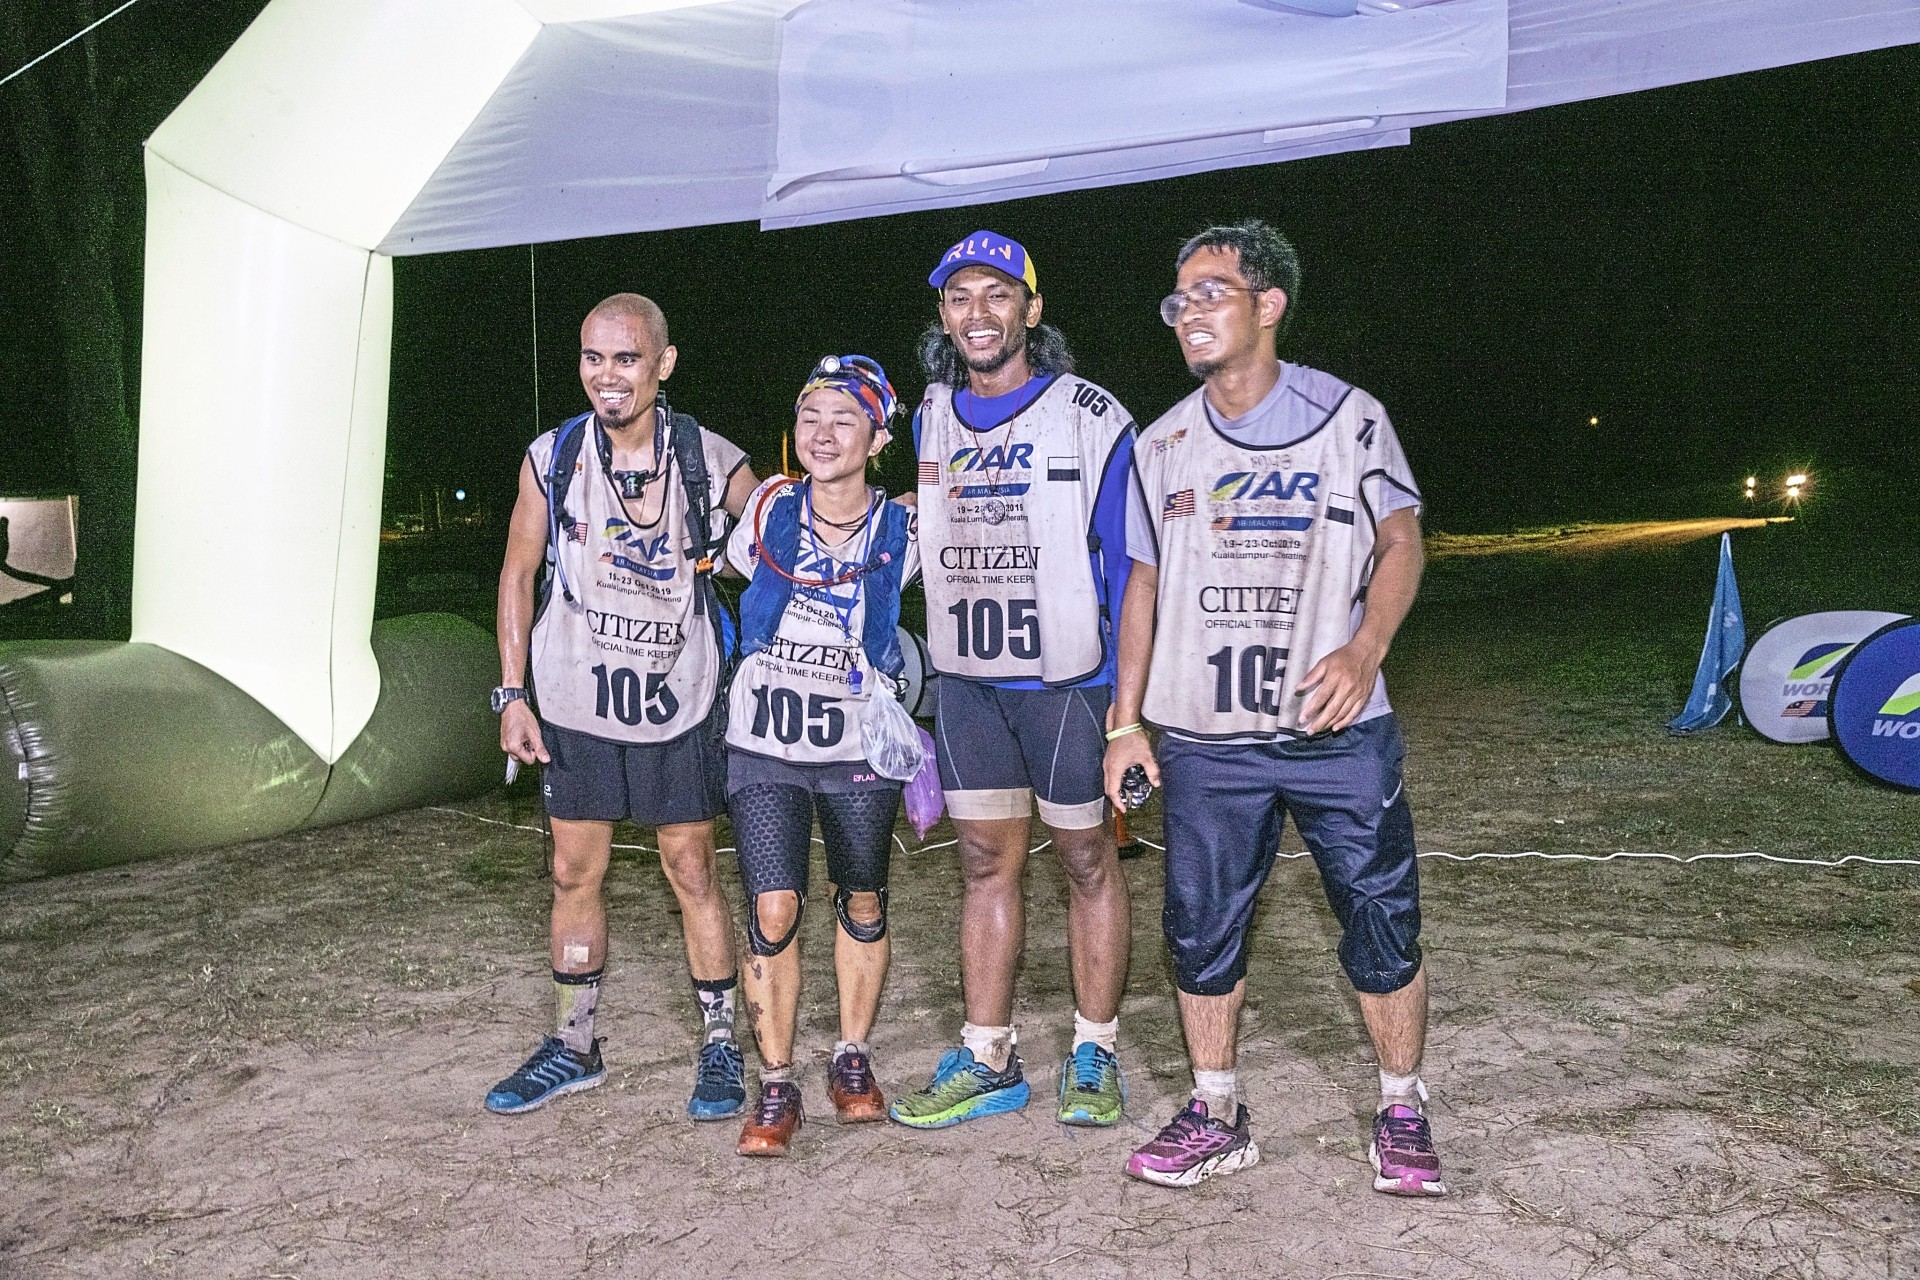 Team Kamikaze A from Malaysia came in as first runners-up in the race.